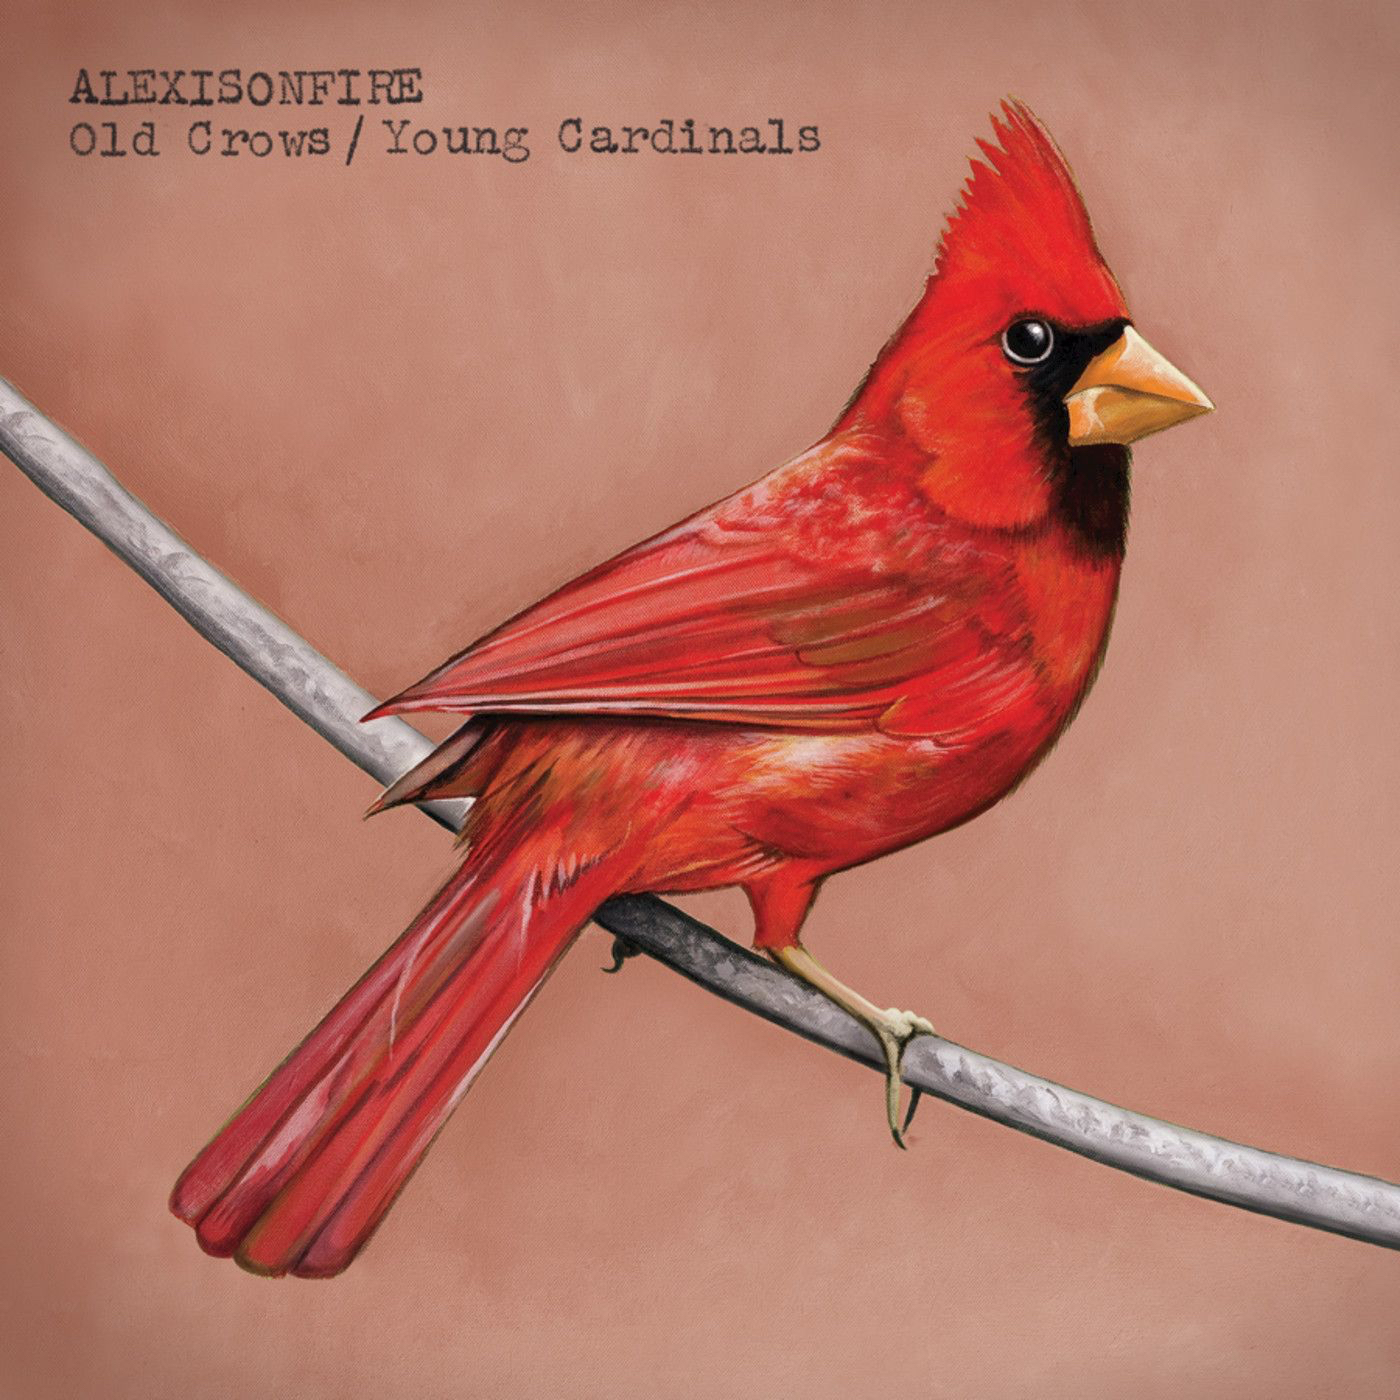 Alexisonfire - Old Crows / Young Cardinals (2009)